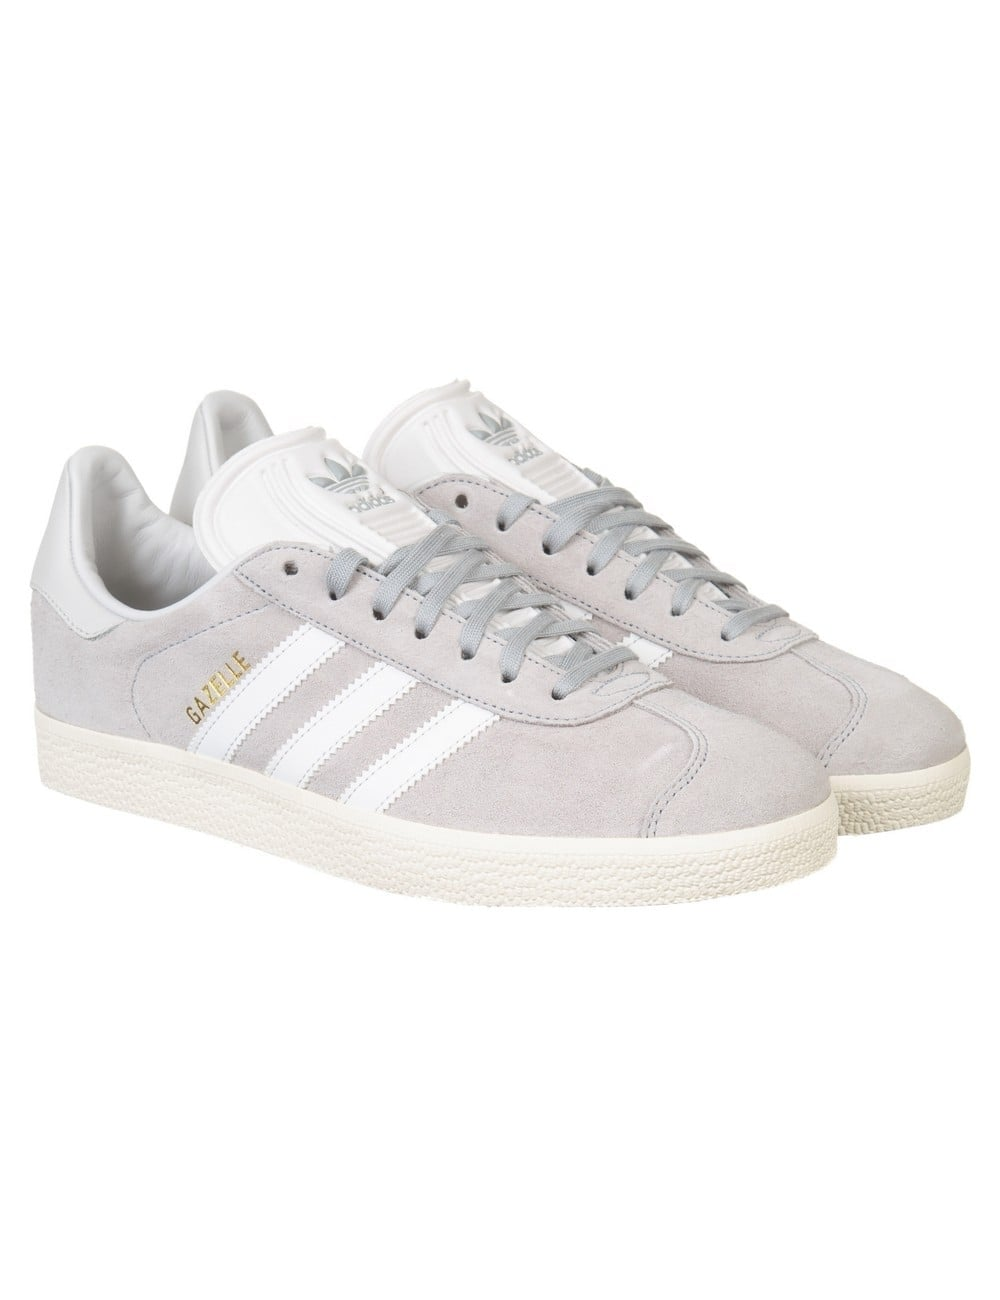 online store a6eab 95270 Adidas Originals Gazelle OG Shoes - Clear OnixWhite